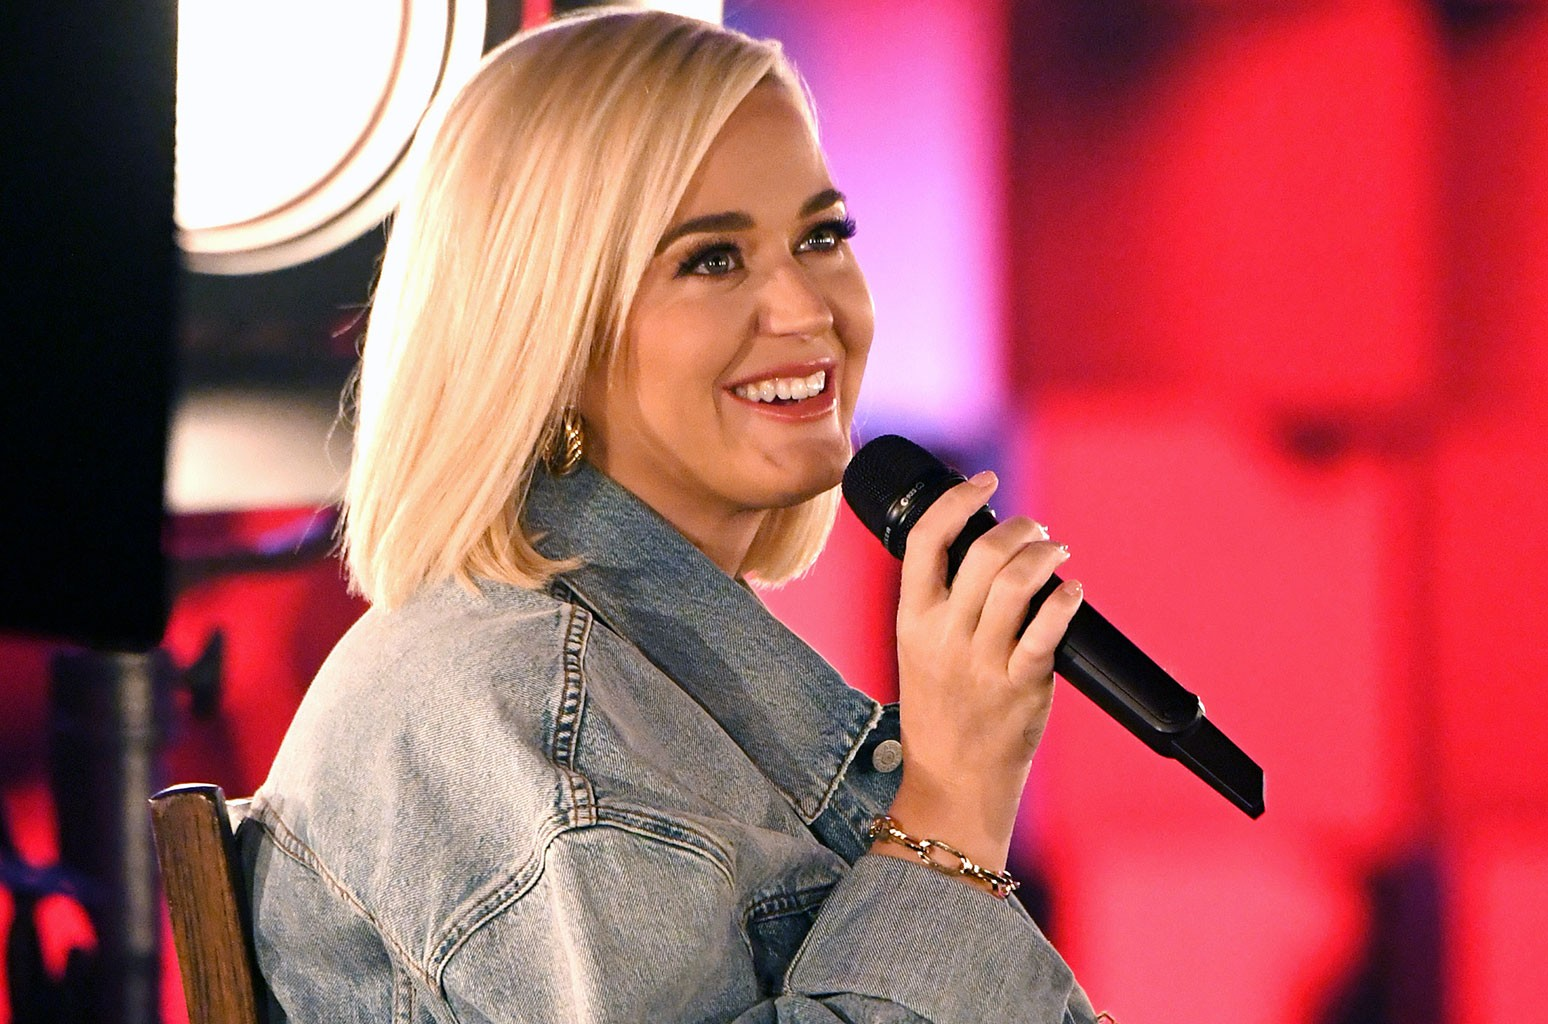 'Pokemon 25: The Album,' Featuring Katy Perry, J Balvin & Post Malone, Set for Fall 2021